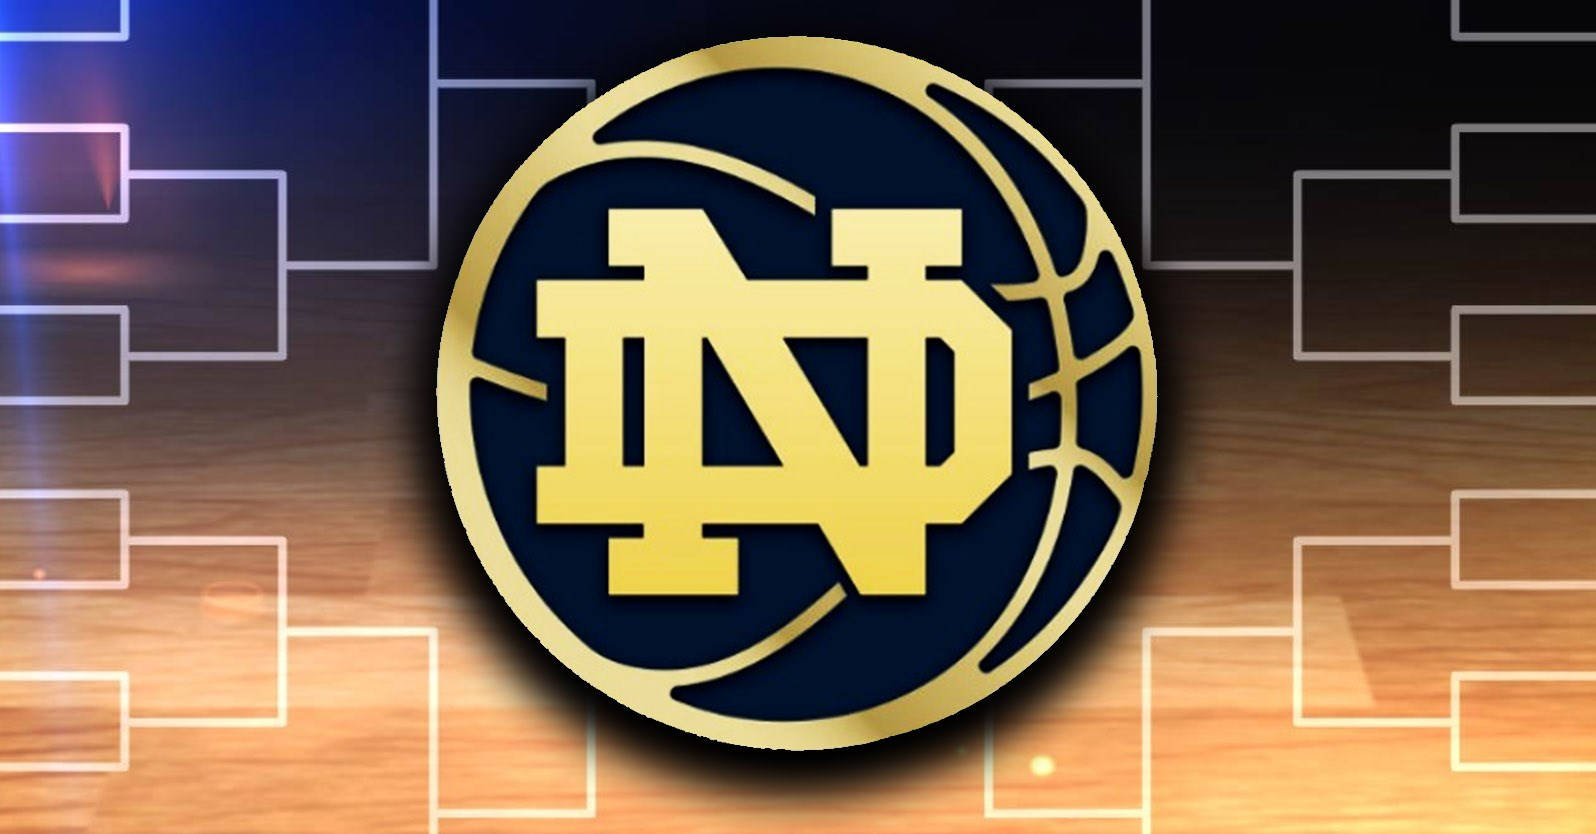 Notre Dame Basketball Wallpaper